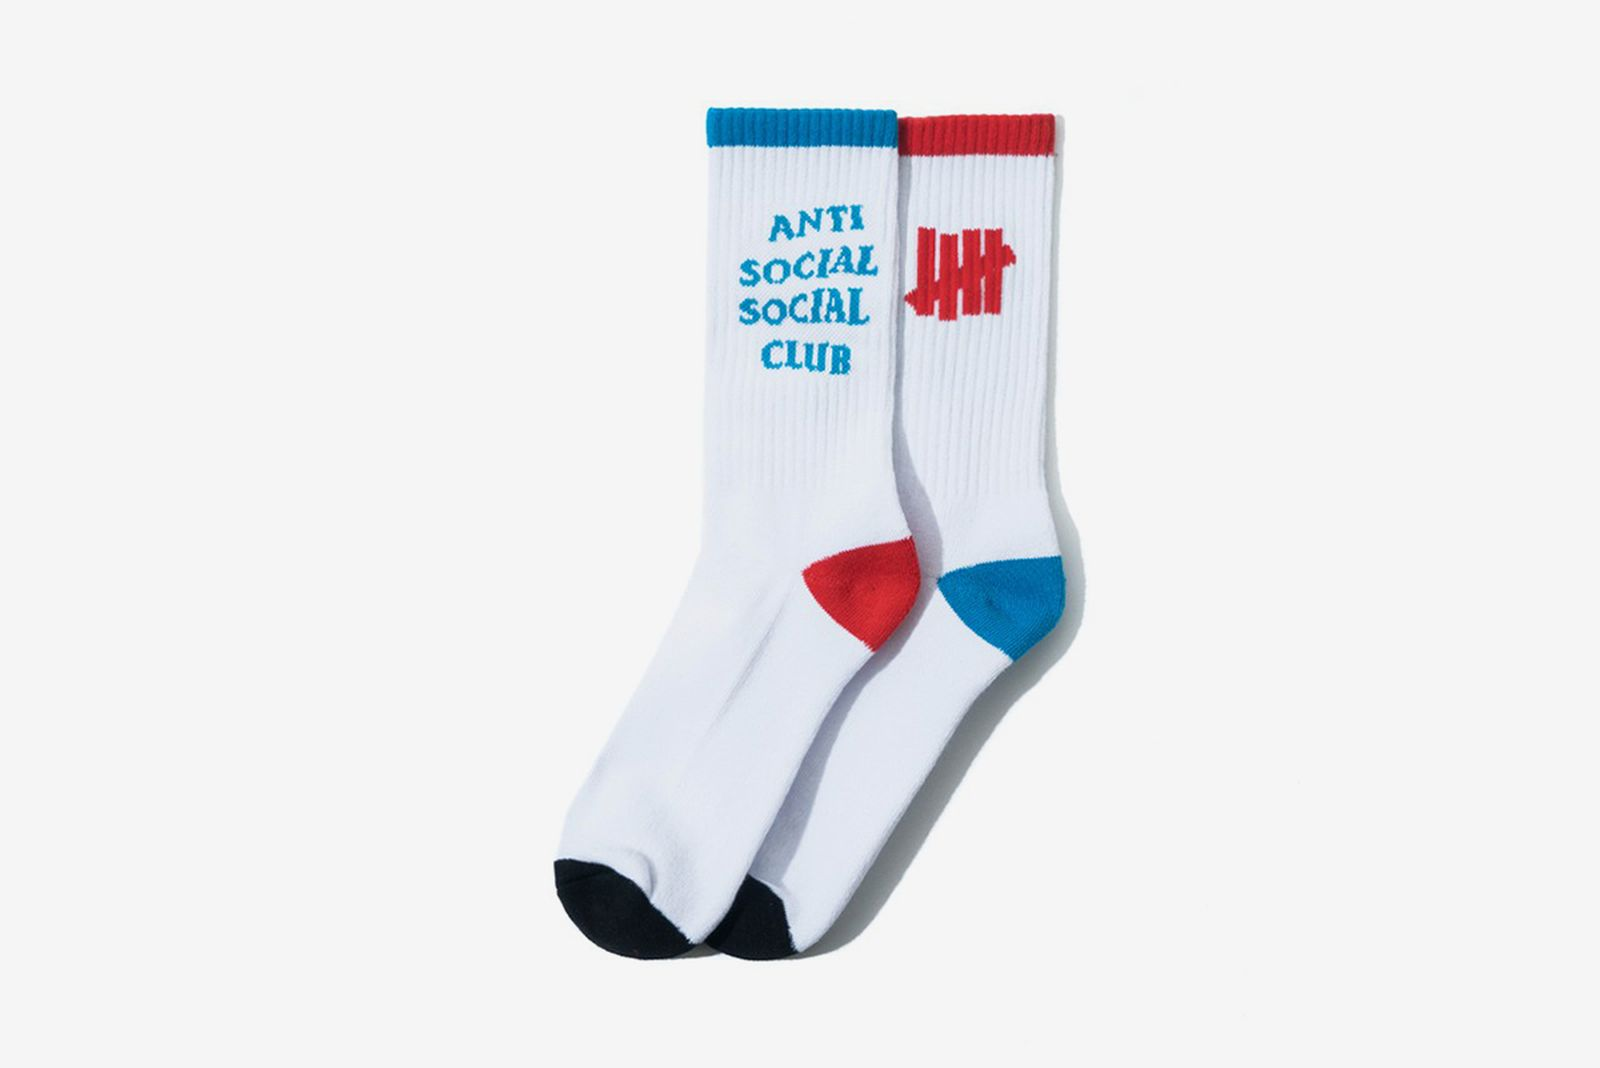 Anti Social Social Club x UNDEFEATED collection